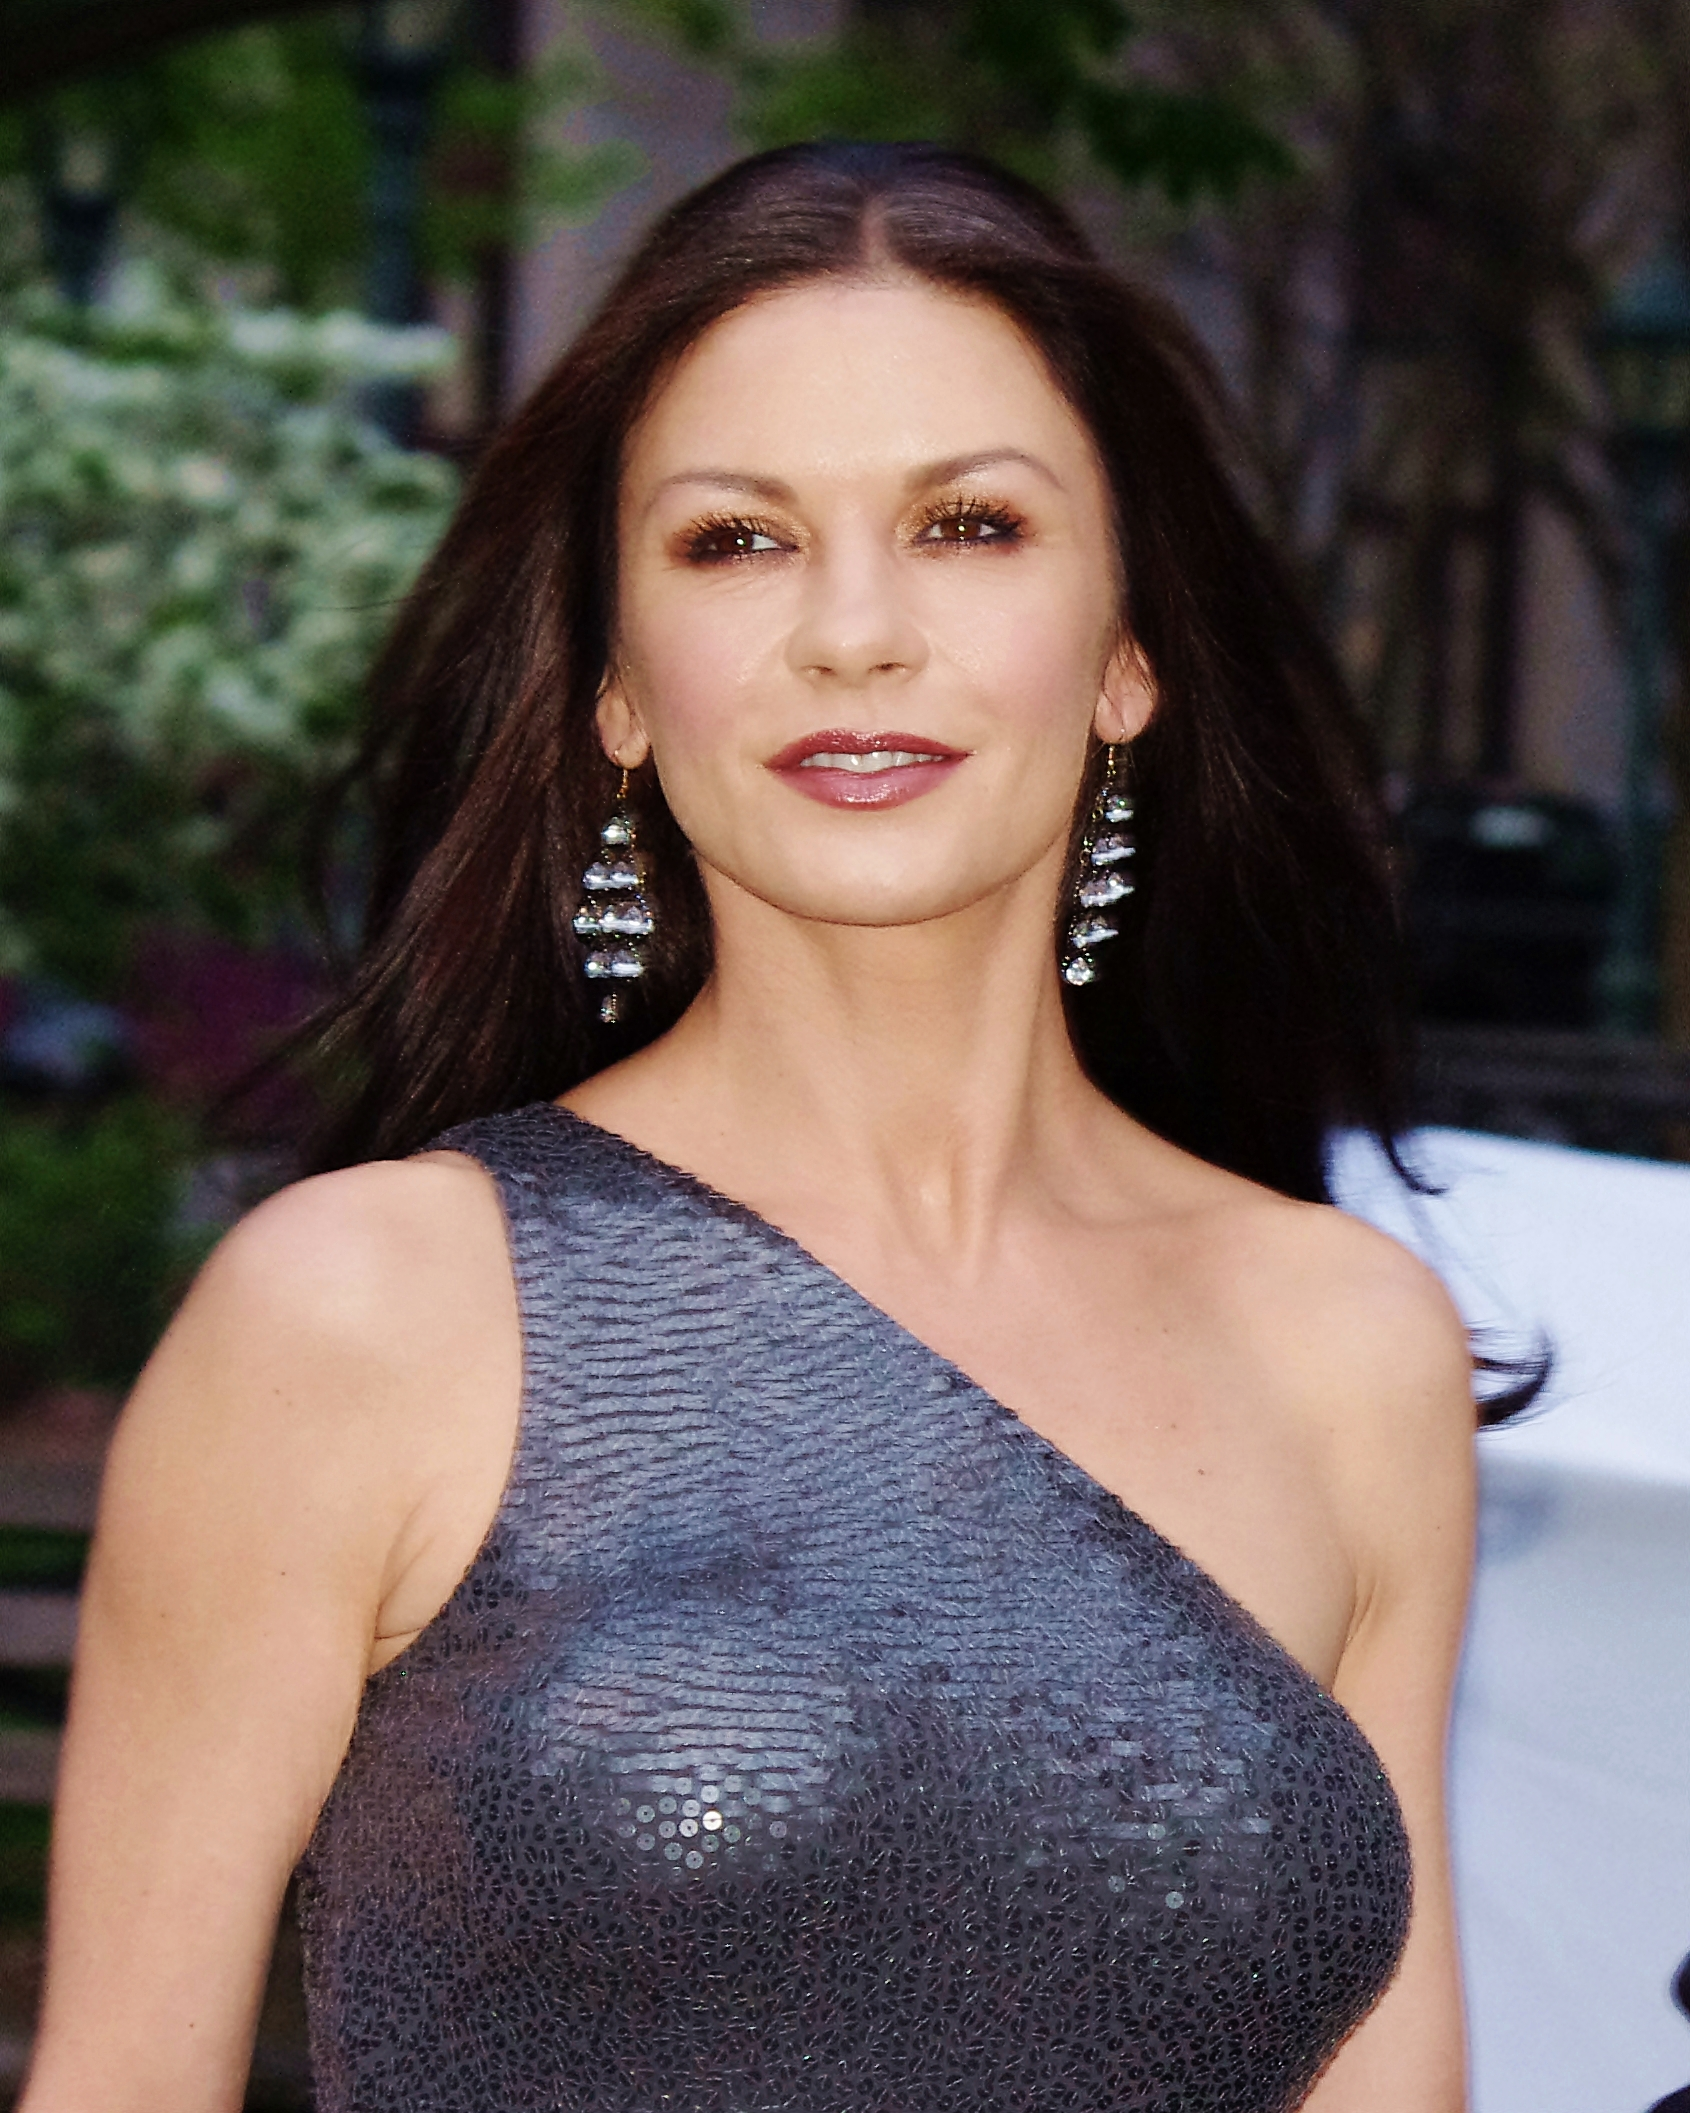 Catherine Zeta-Jones nude photos 2019